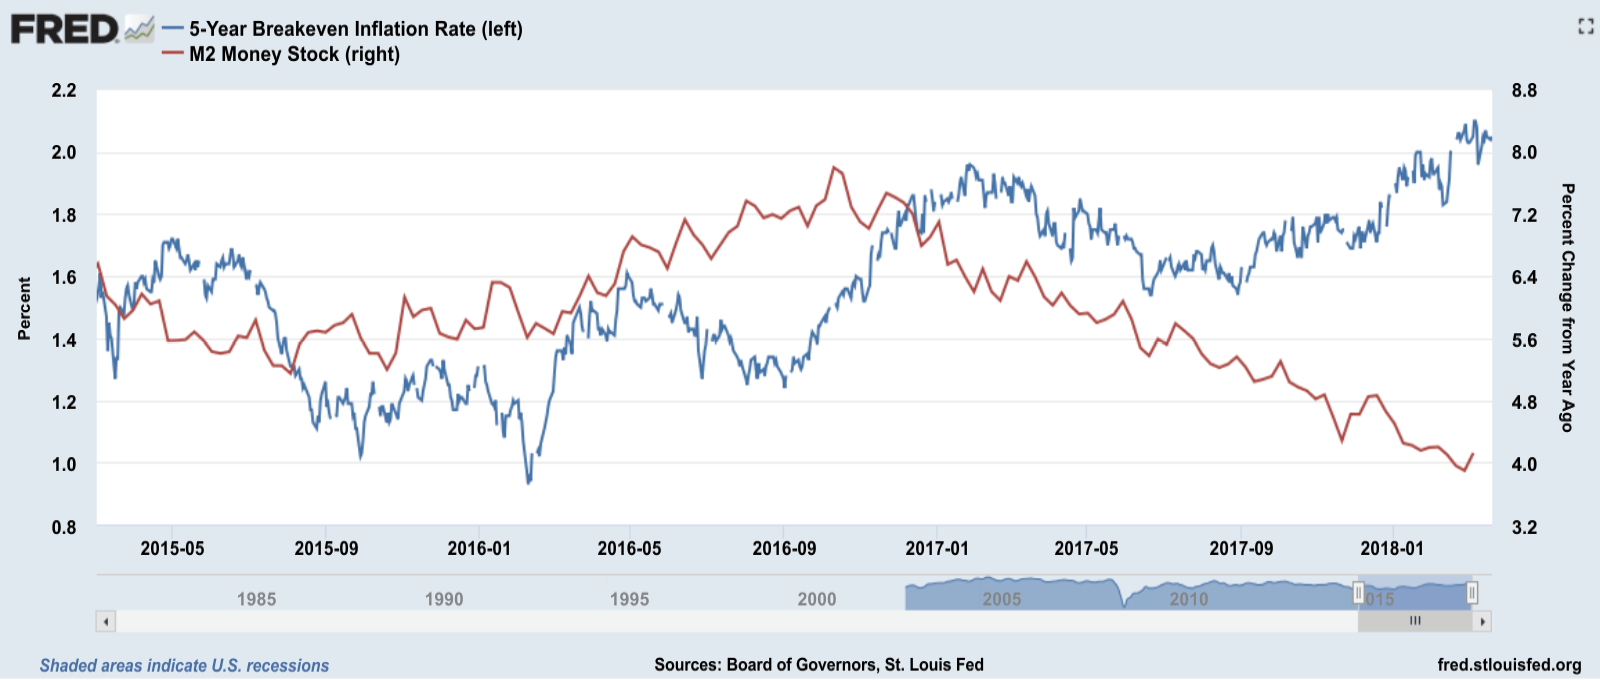 Will Quantitative Tightening (QT), which is deflationary in